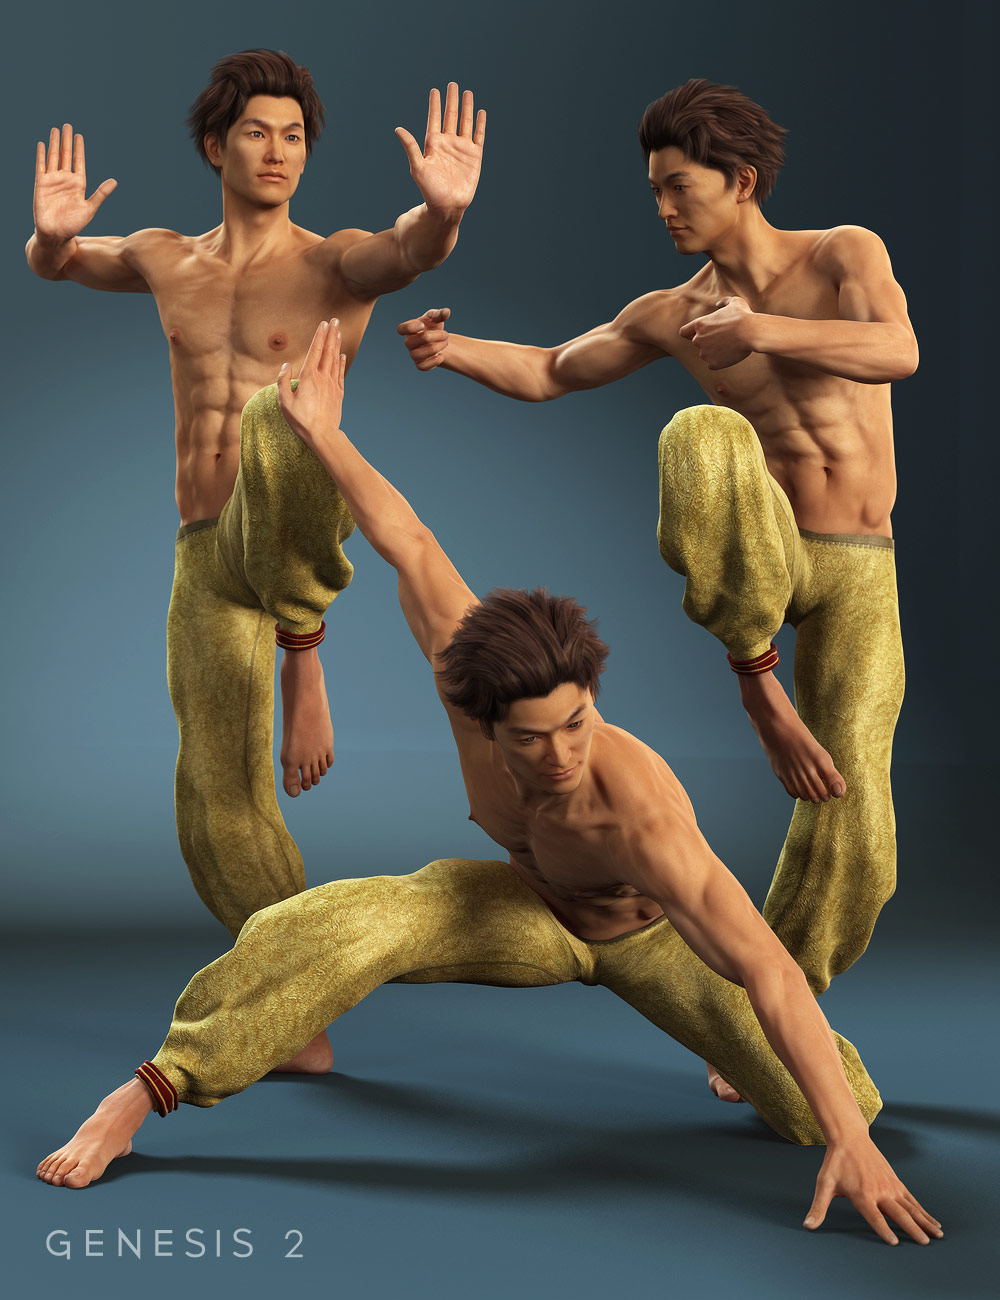 Monk Moves for Lee 6 by: Val3dart, 3D Models by Daz 3D